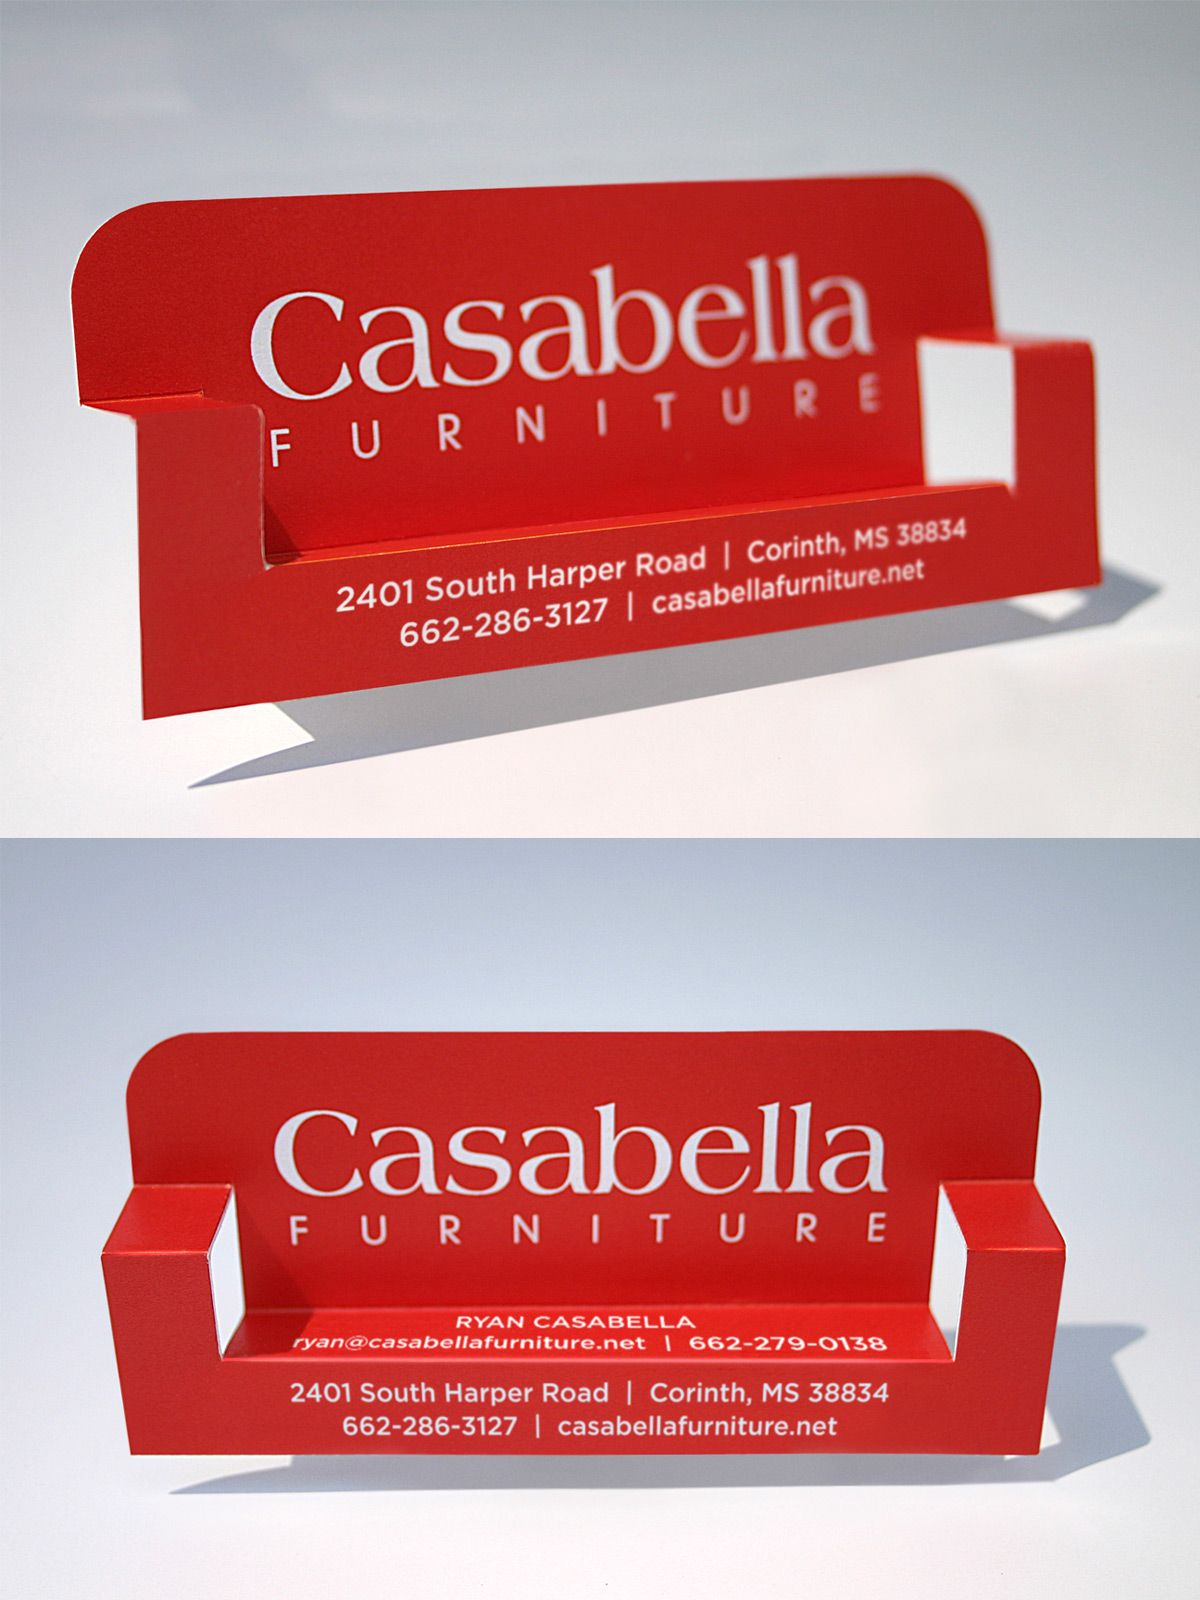 Casabella Furniture Sofa This Card For A Furniture Shop Can Be